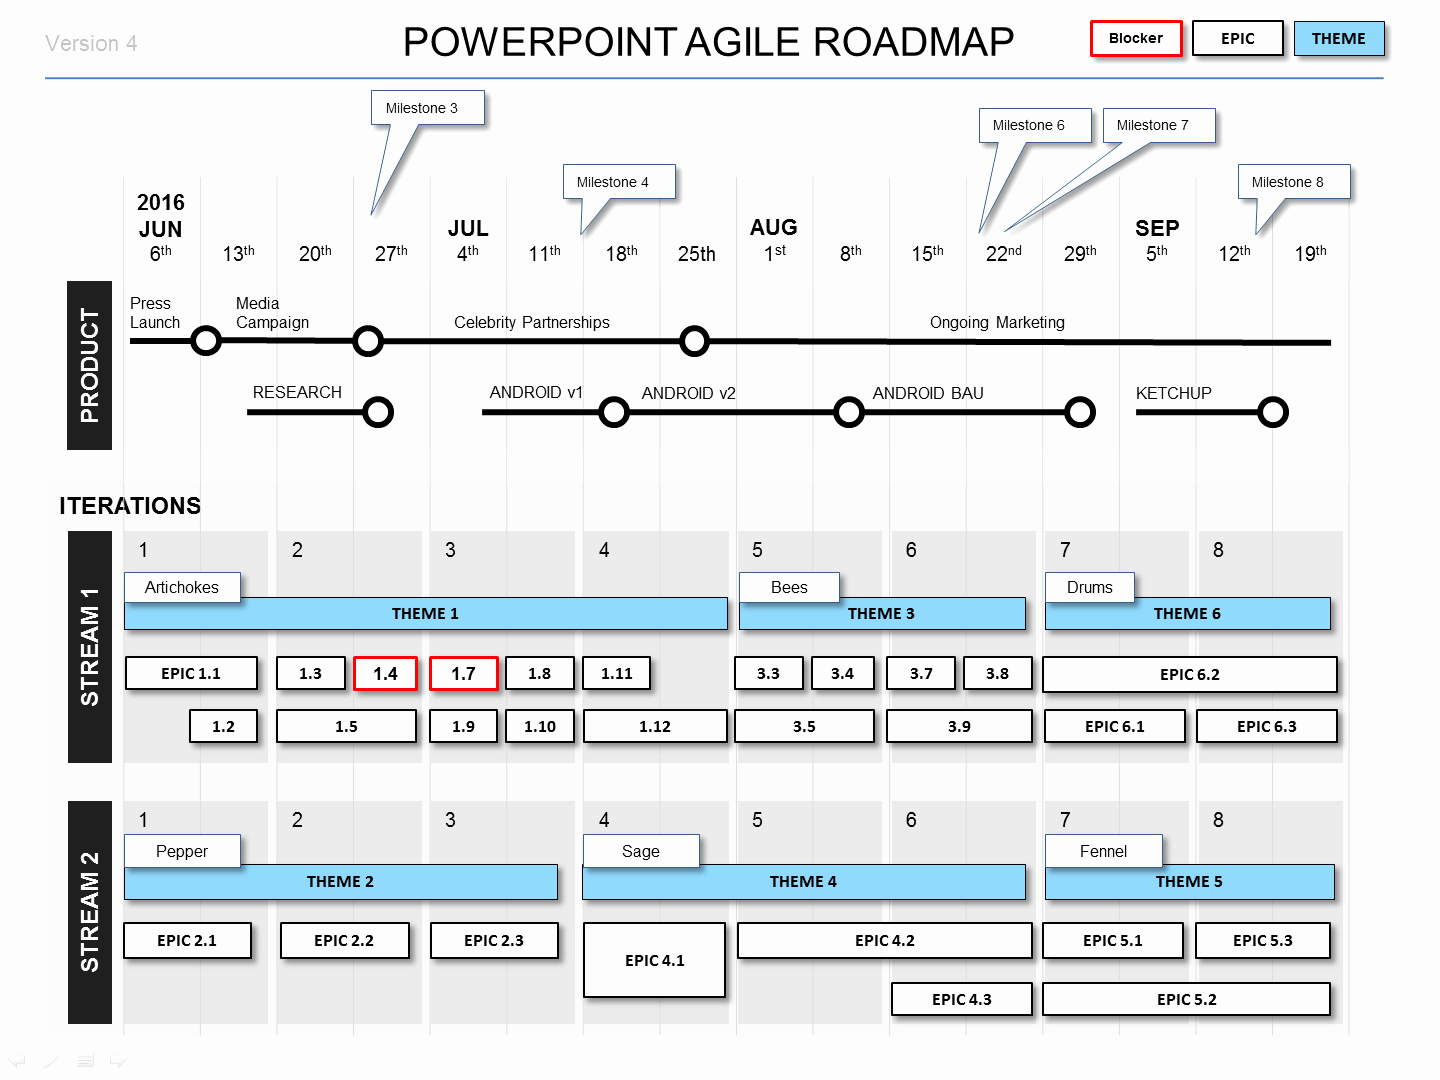 Road Map Template Powerpoint New Powerpoint Agile Roadmap Template 4 Agile formats